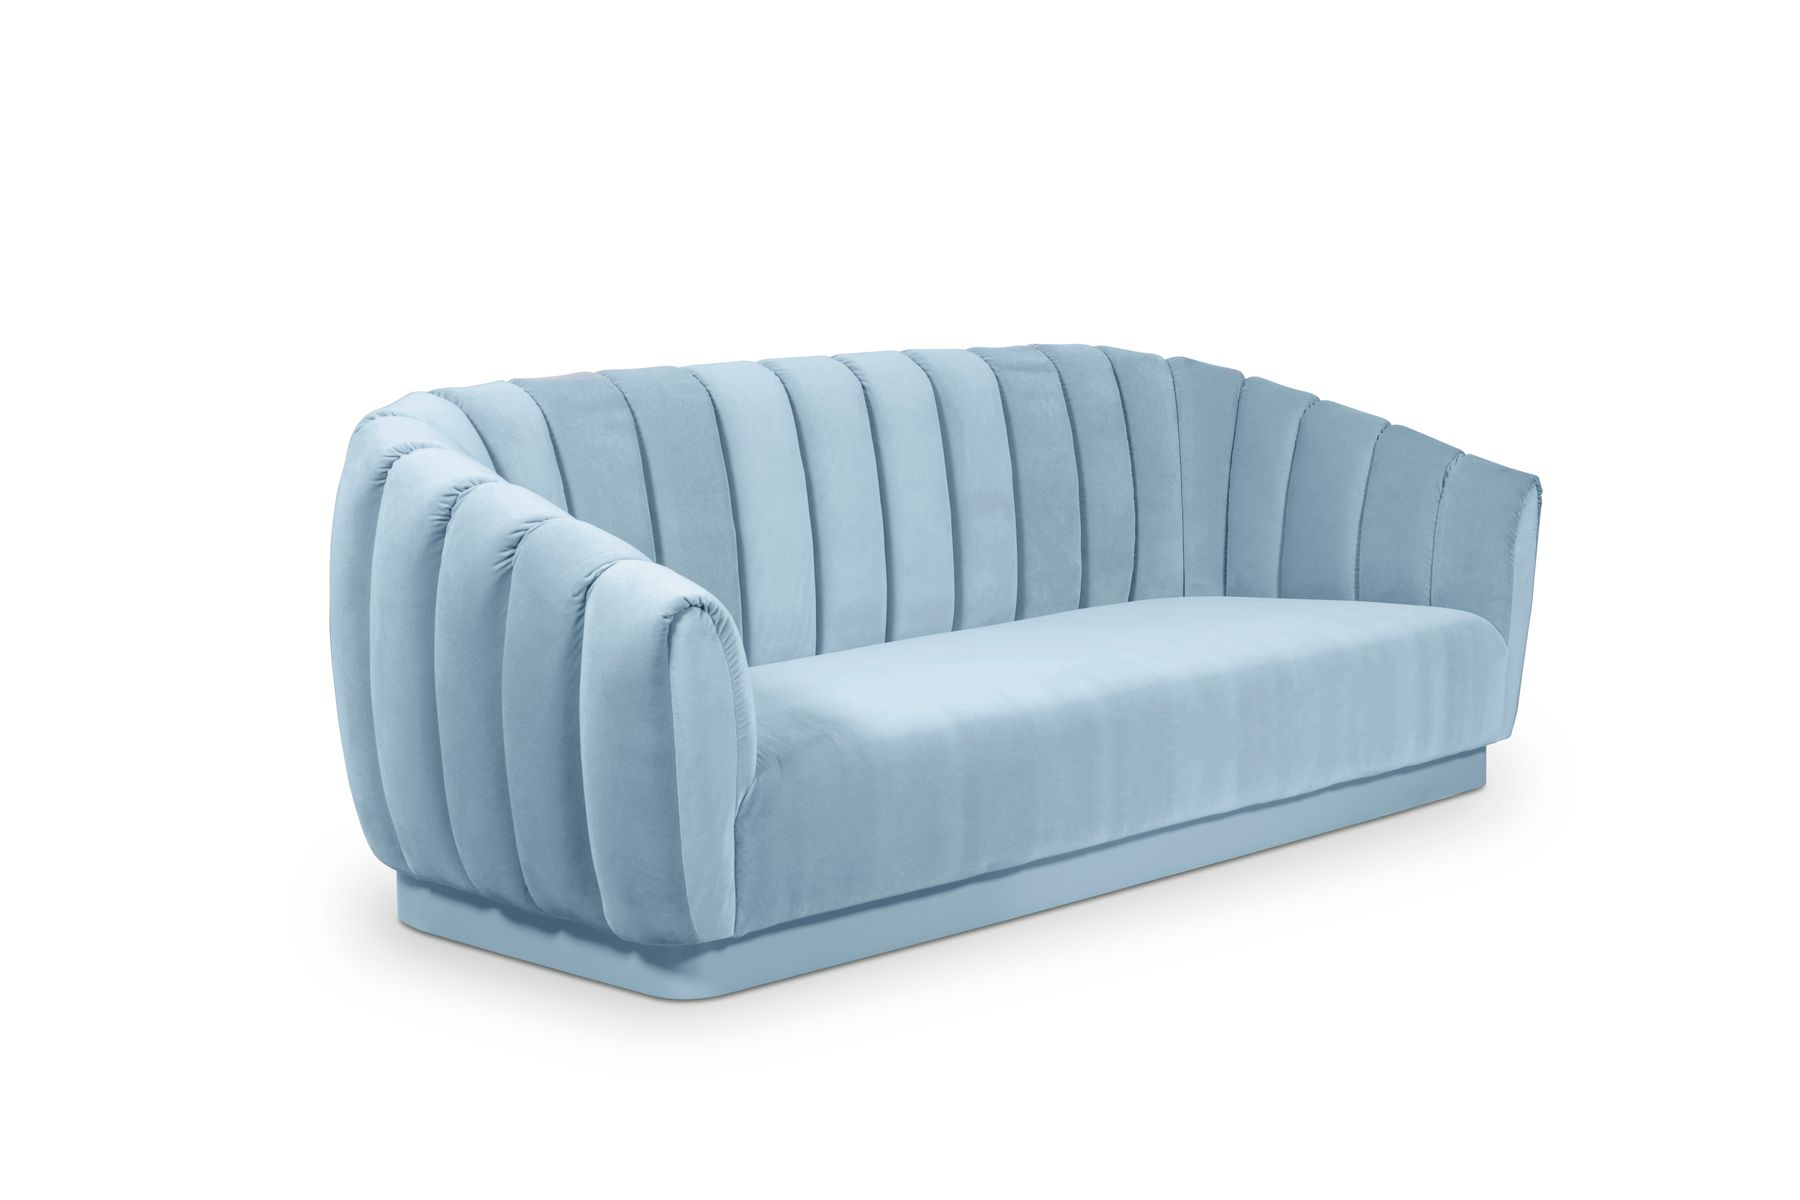 imm cologne 2019 Know More about BRABBU's Modern Sofas at imm Cologne 2019 Oreas Sofa BRABBU